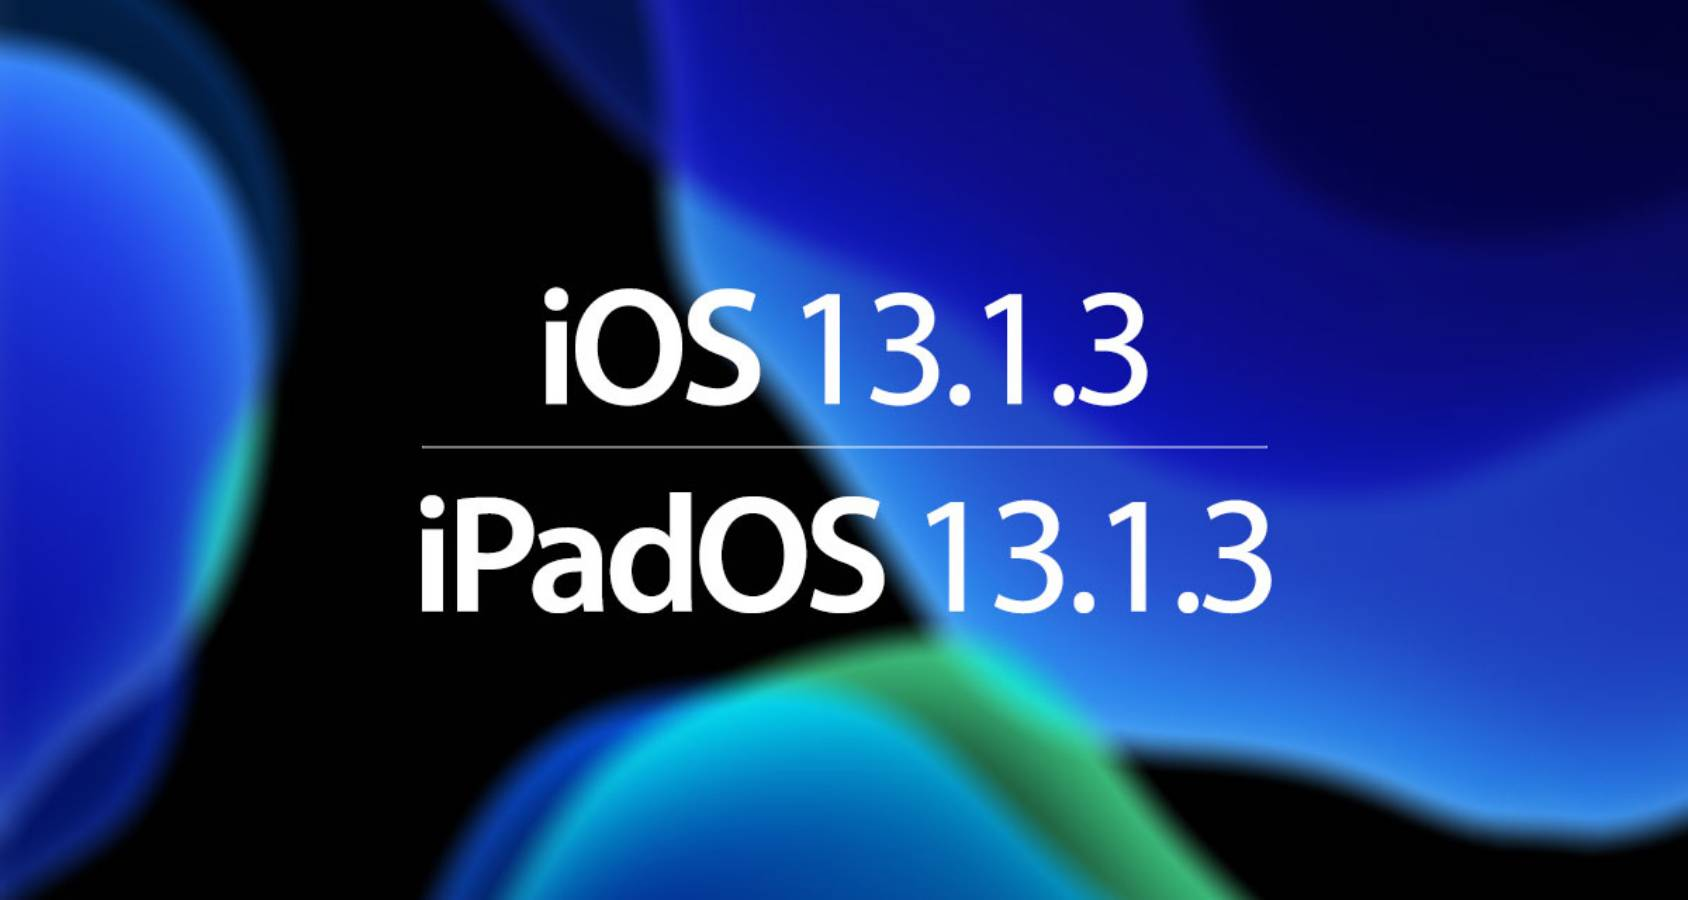 iOS 13.1.3 PROBLEME Confirmate Apple